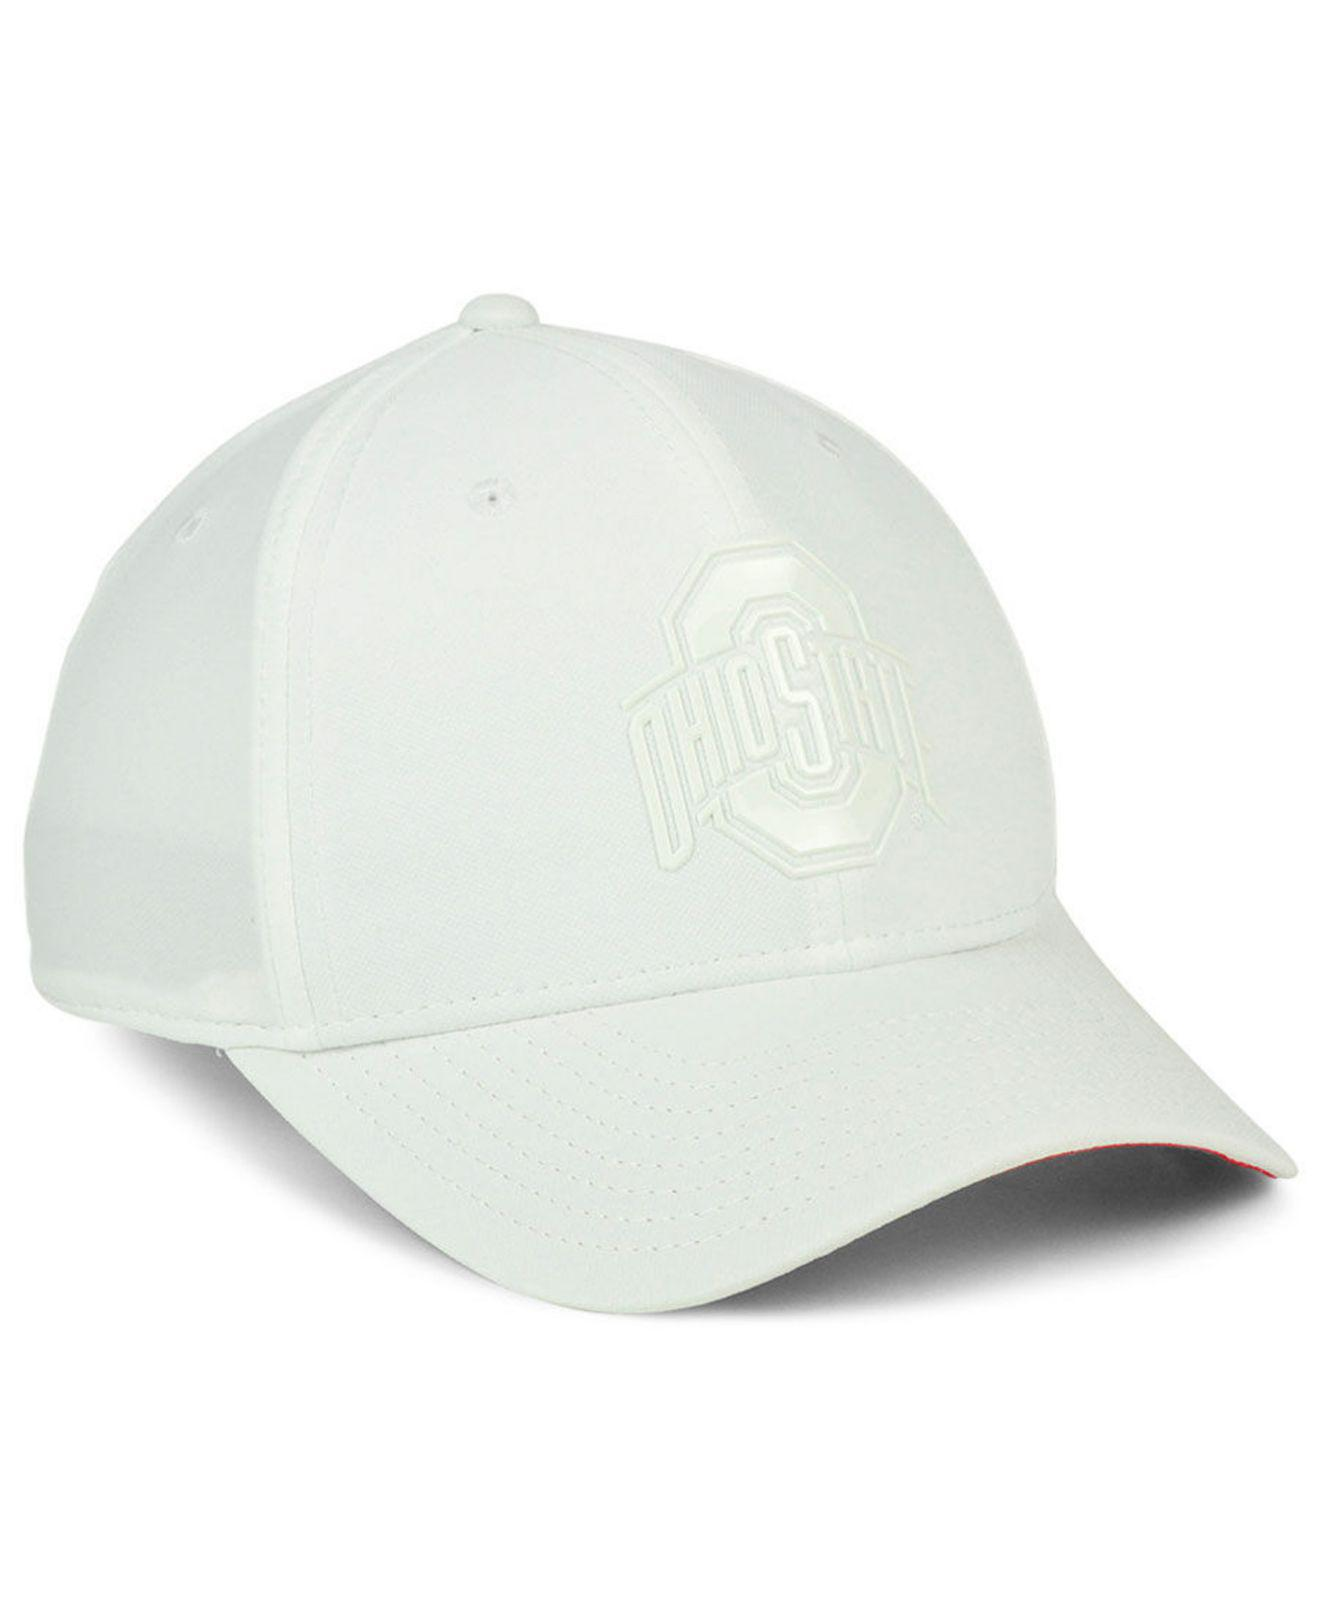 hot sale online 81ff3 a58ce Nike Ohio State Buckeyes Col Cap in White for Men - Lyst